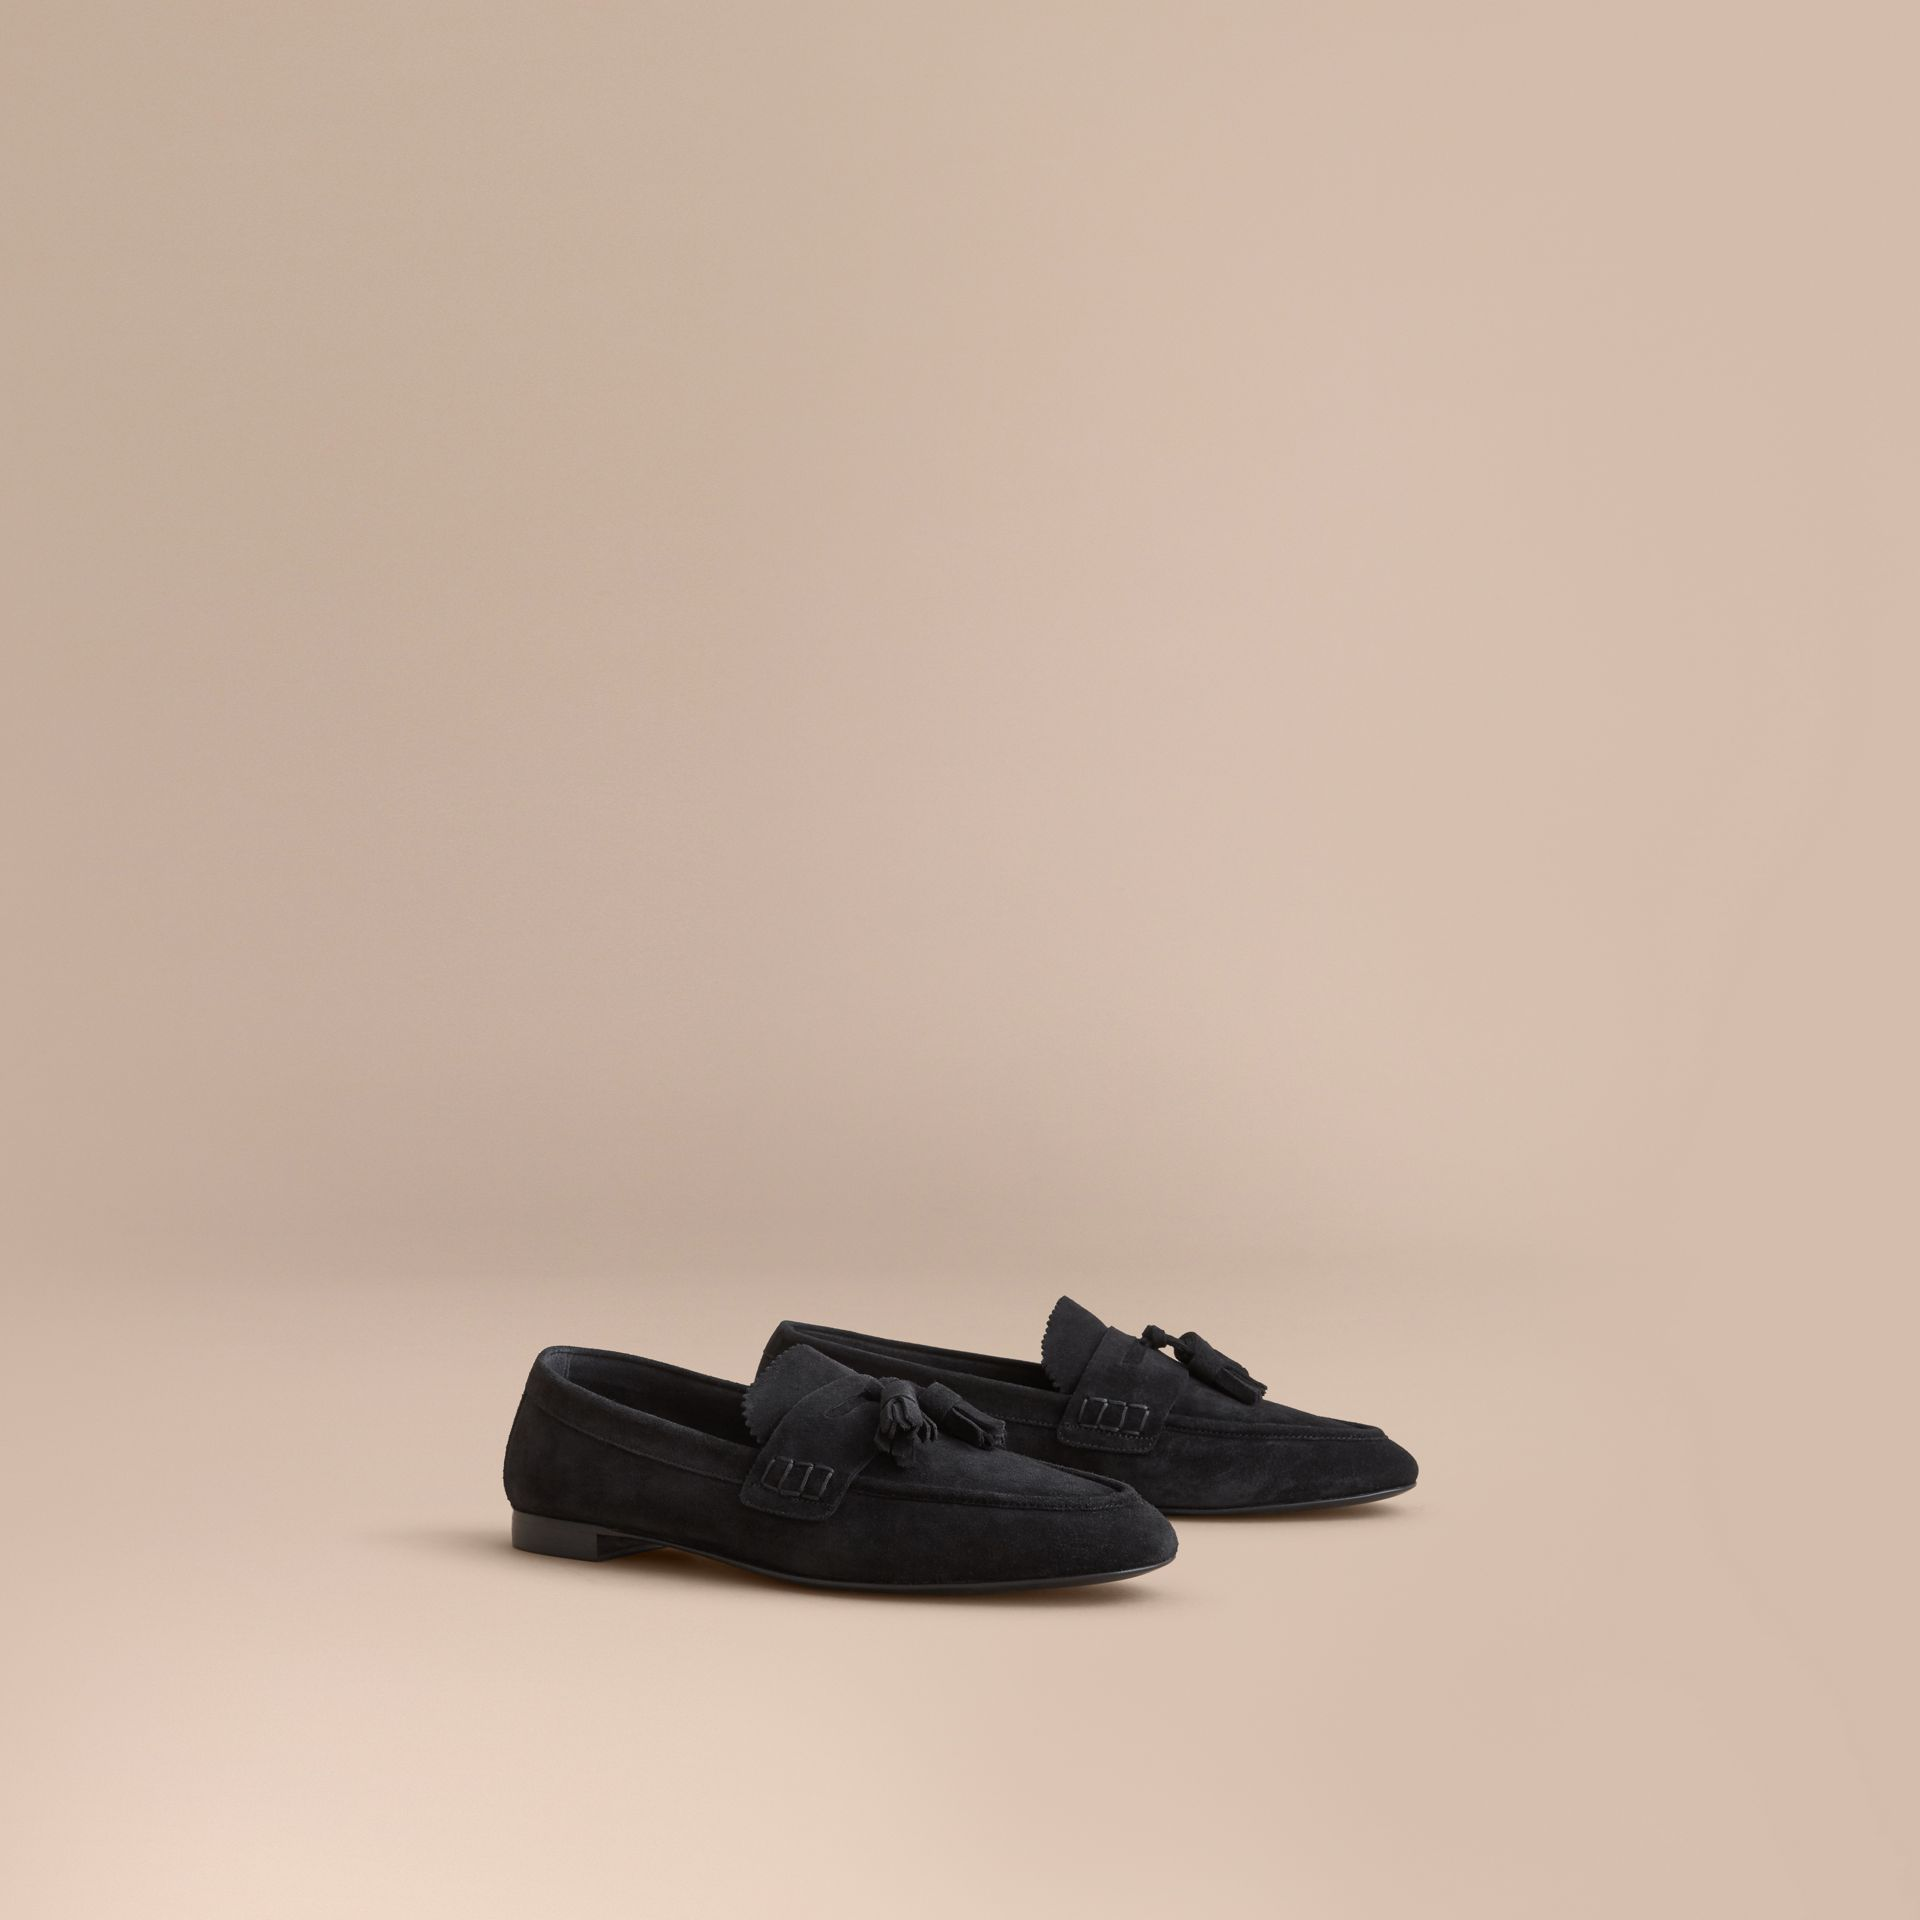 Tasselled Suede Loafers in Black - Women | Burberry - gallery image 1